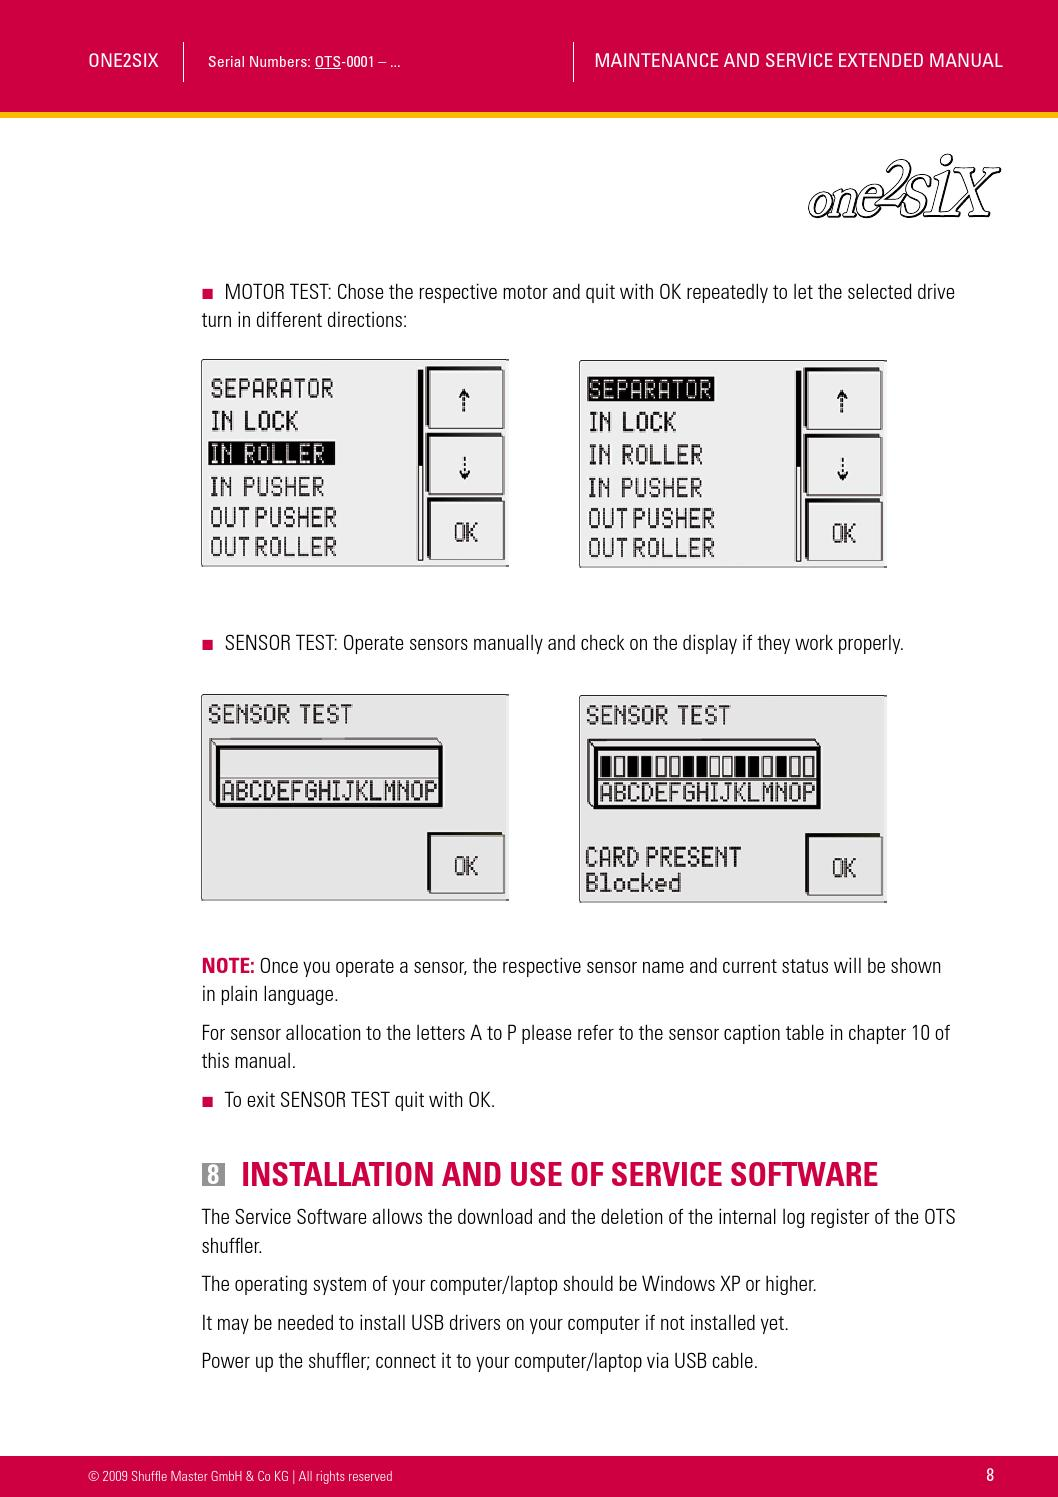 One2six ots service maintenance manual extended 02 2009 by Henry